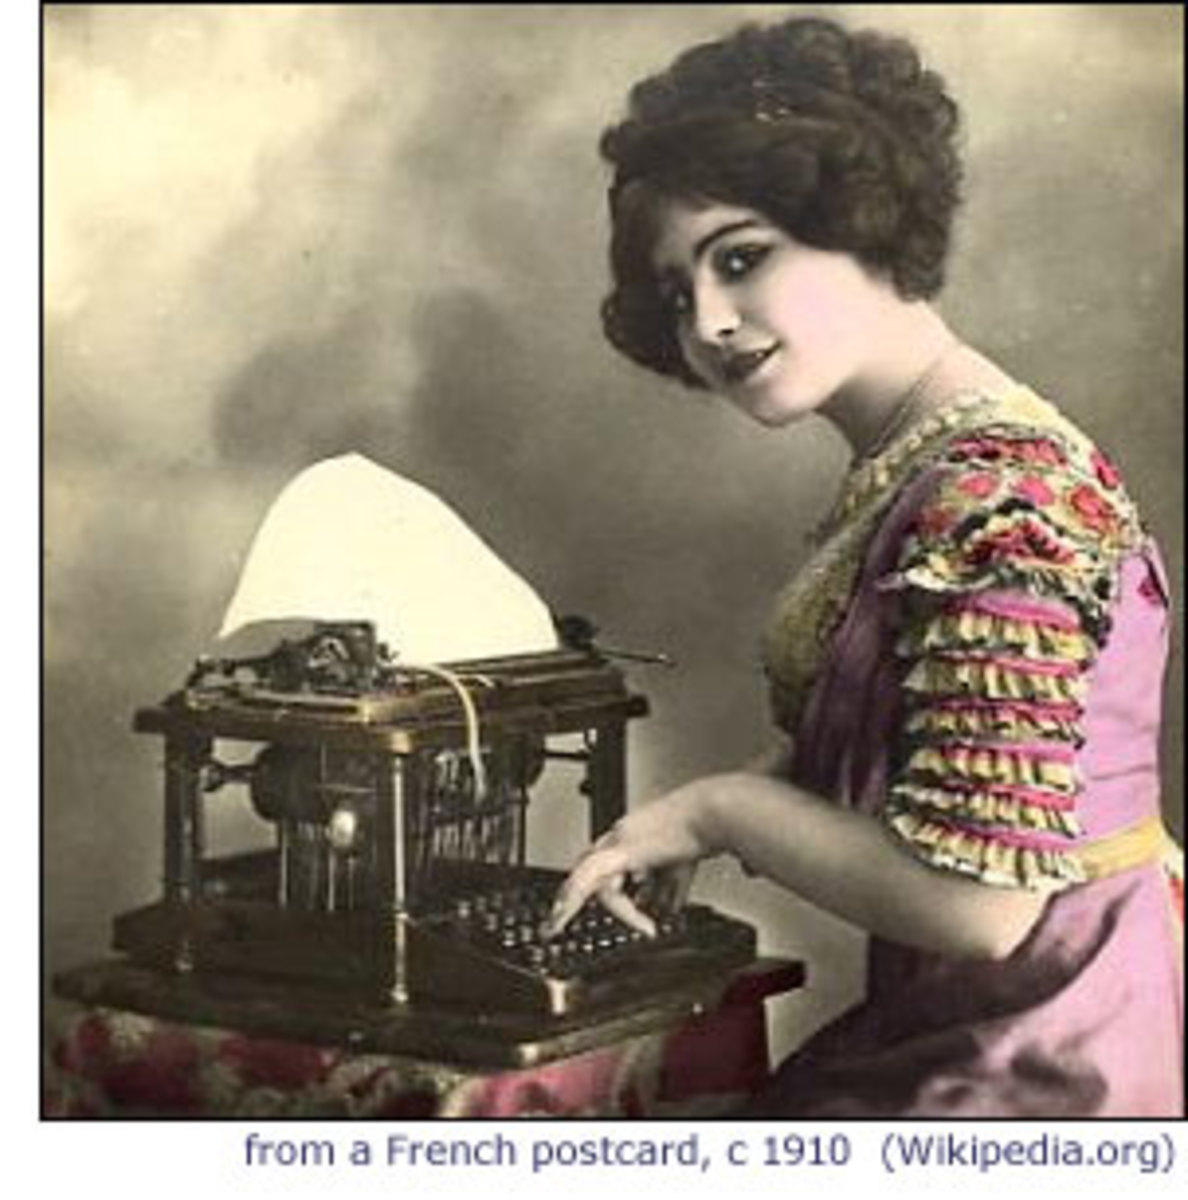 a-brief-history-of-typing